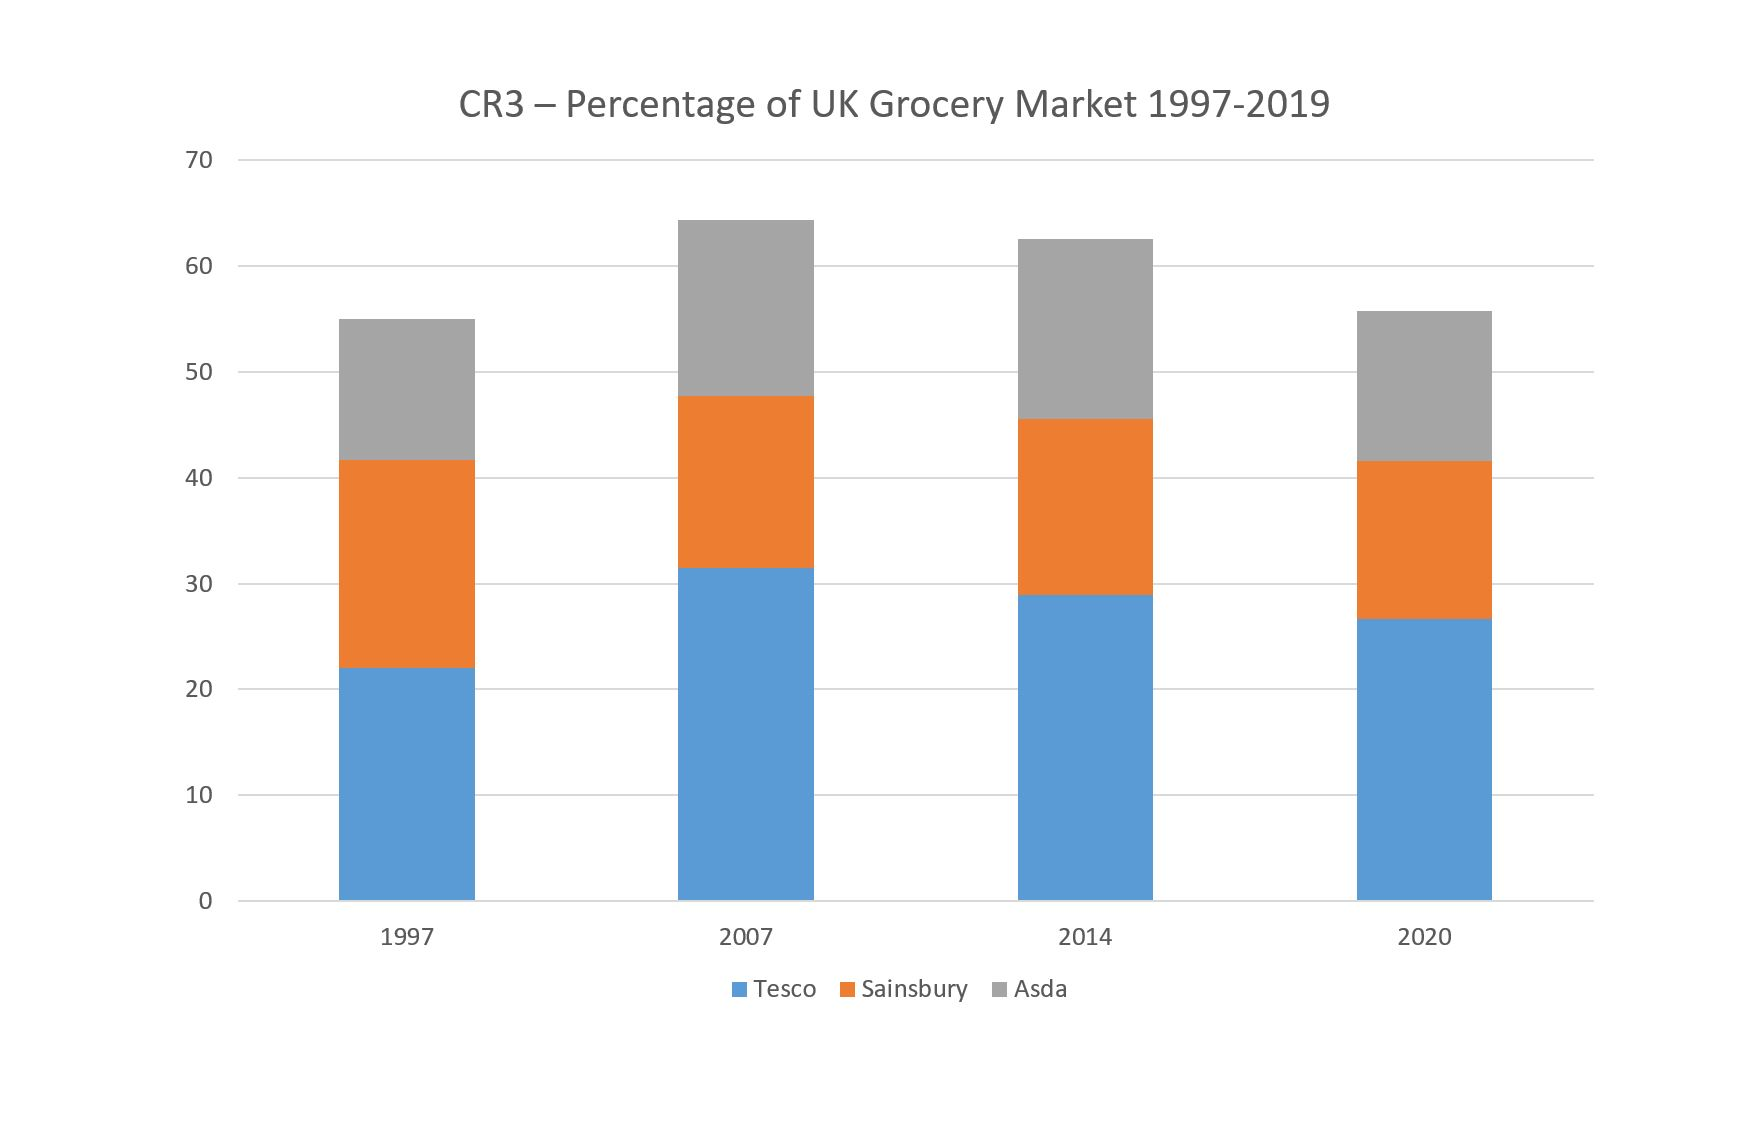 GB Grocery Share 2020 CR3